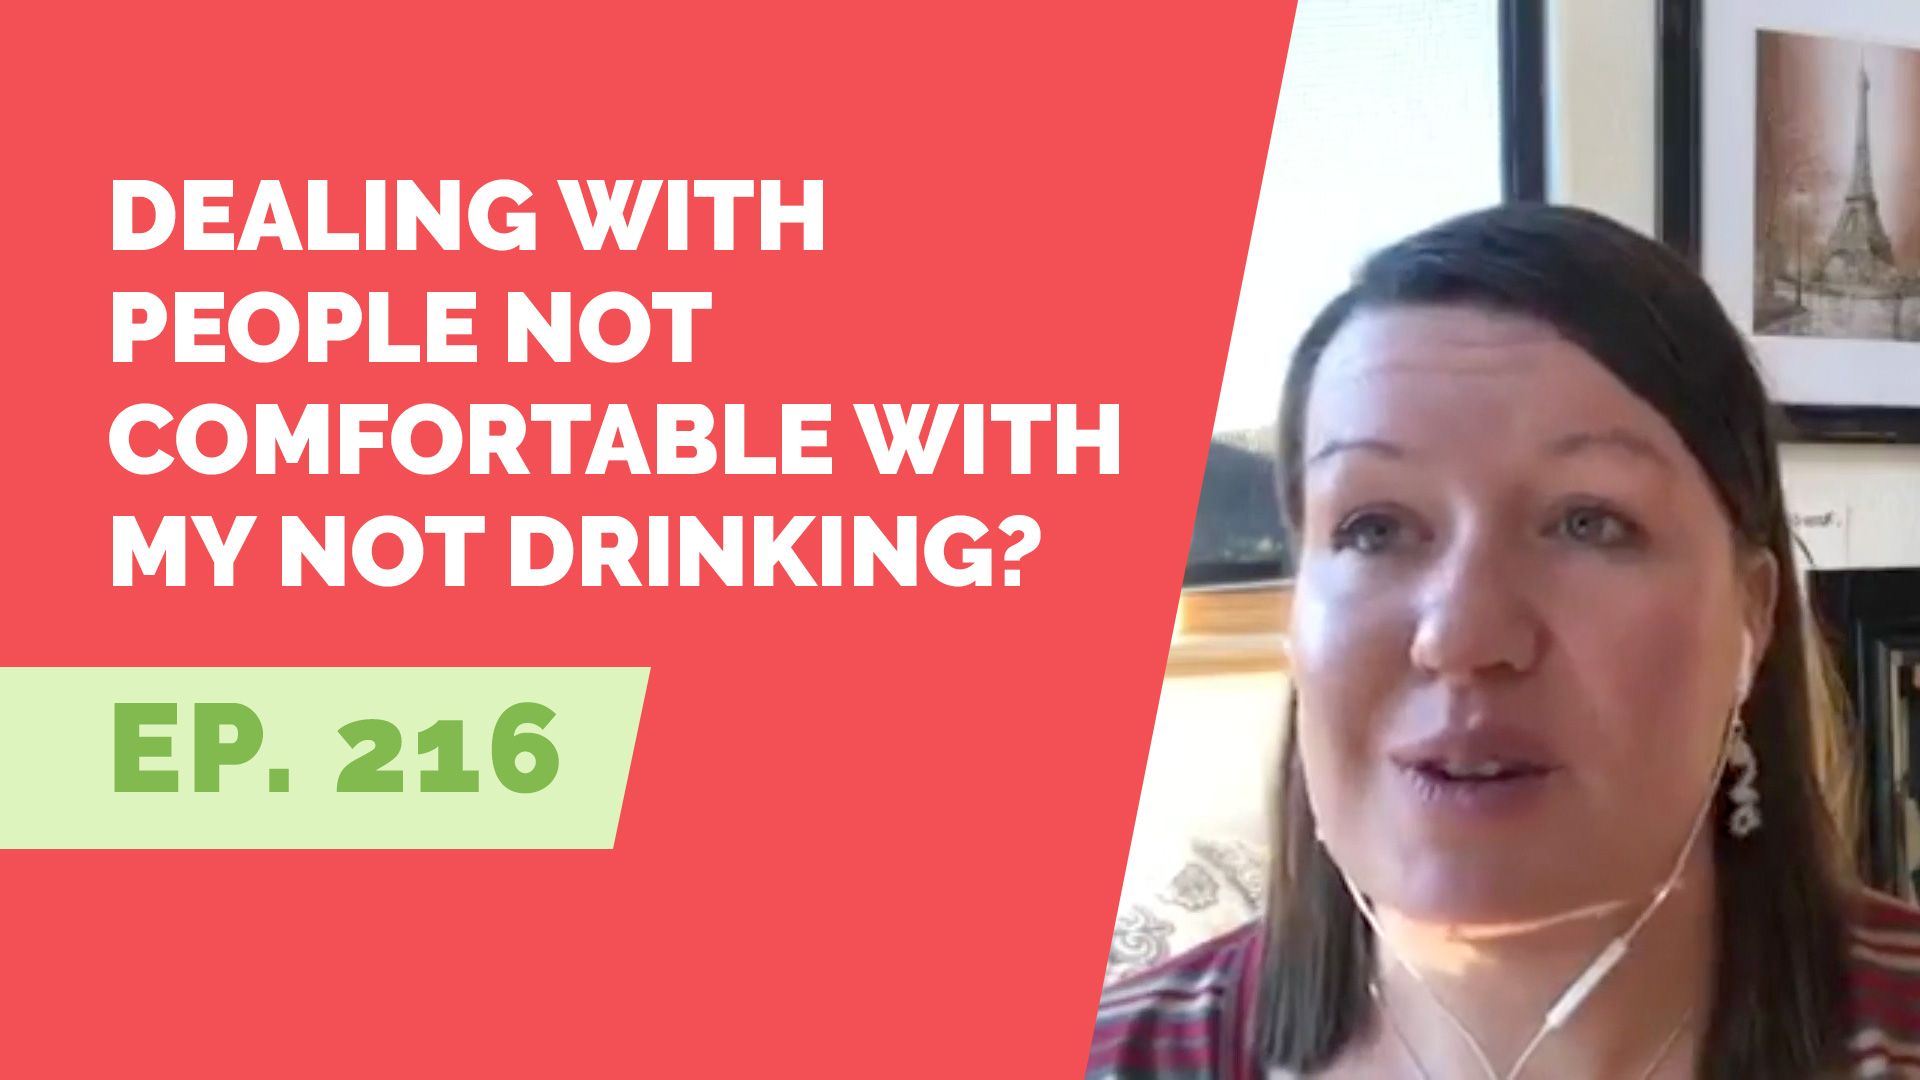 not drinking makes others uncomfortable